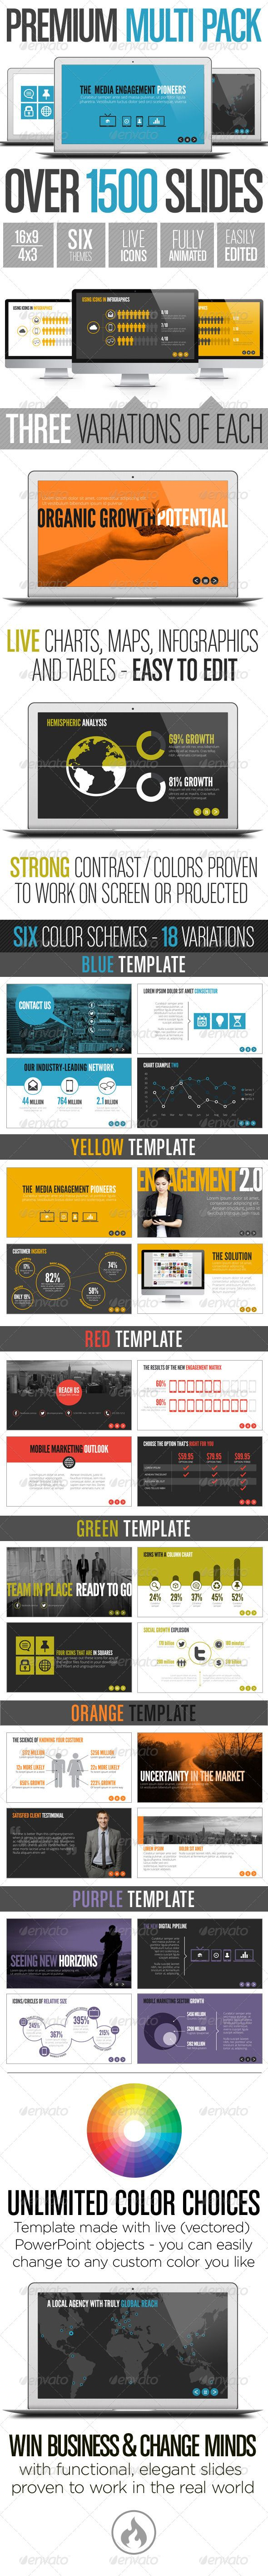 Premium Multi Pack Template System - Business Powerpoint Templates